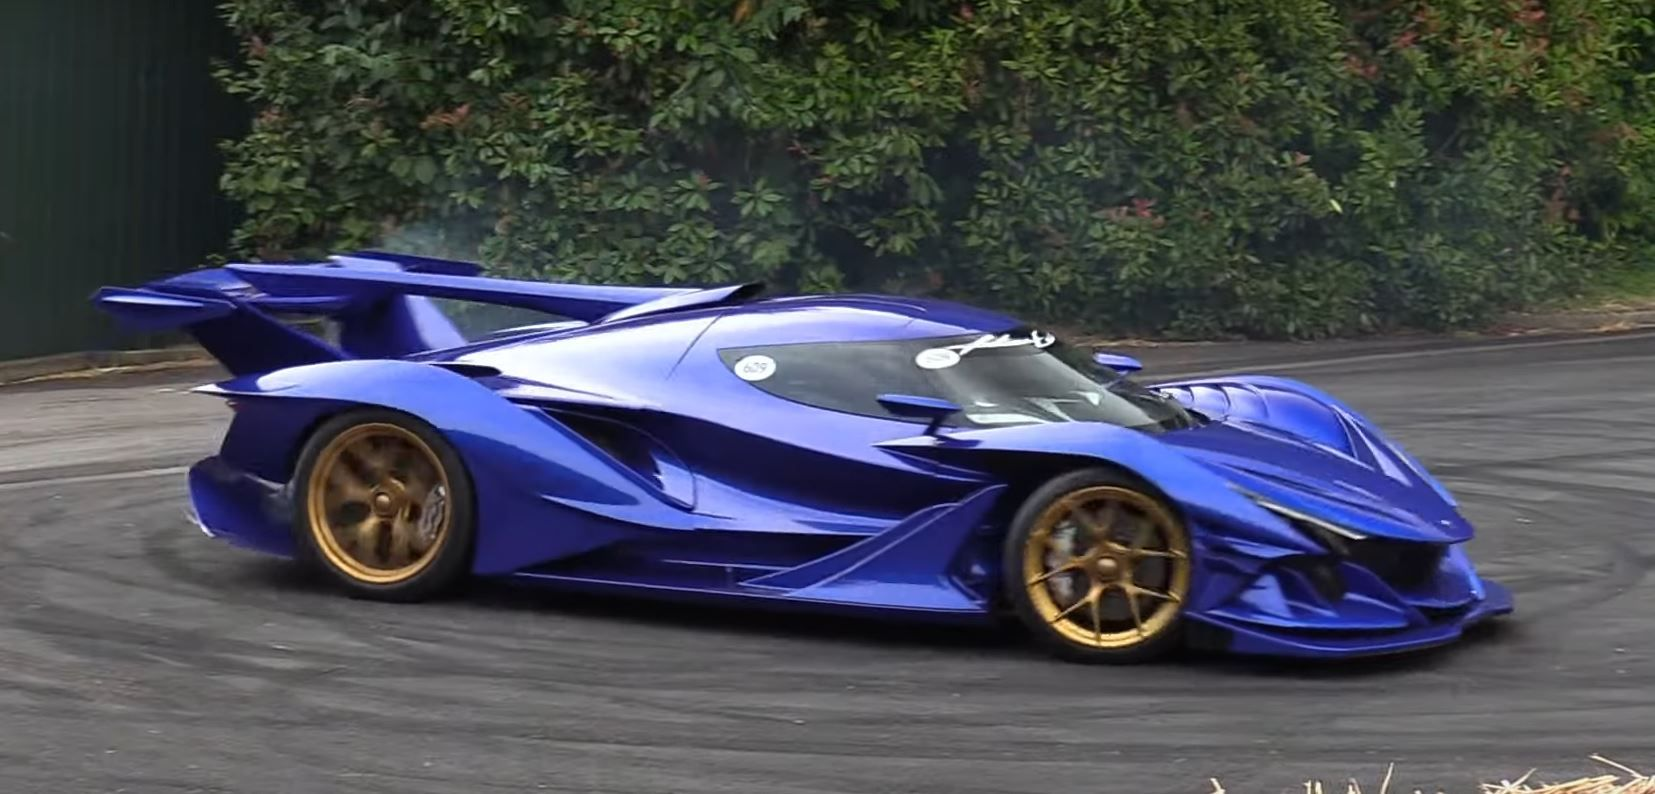 Photo of Apollo IE Sounds Amazing, Looks A Little Tricky To Drive